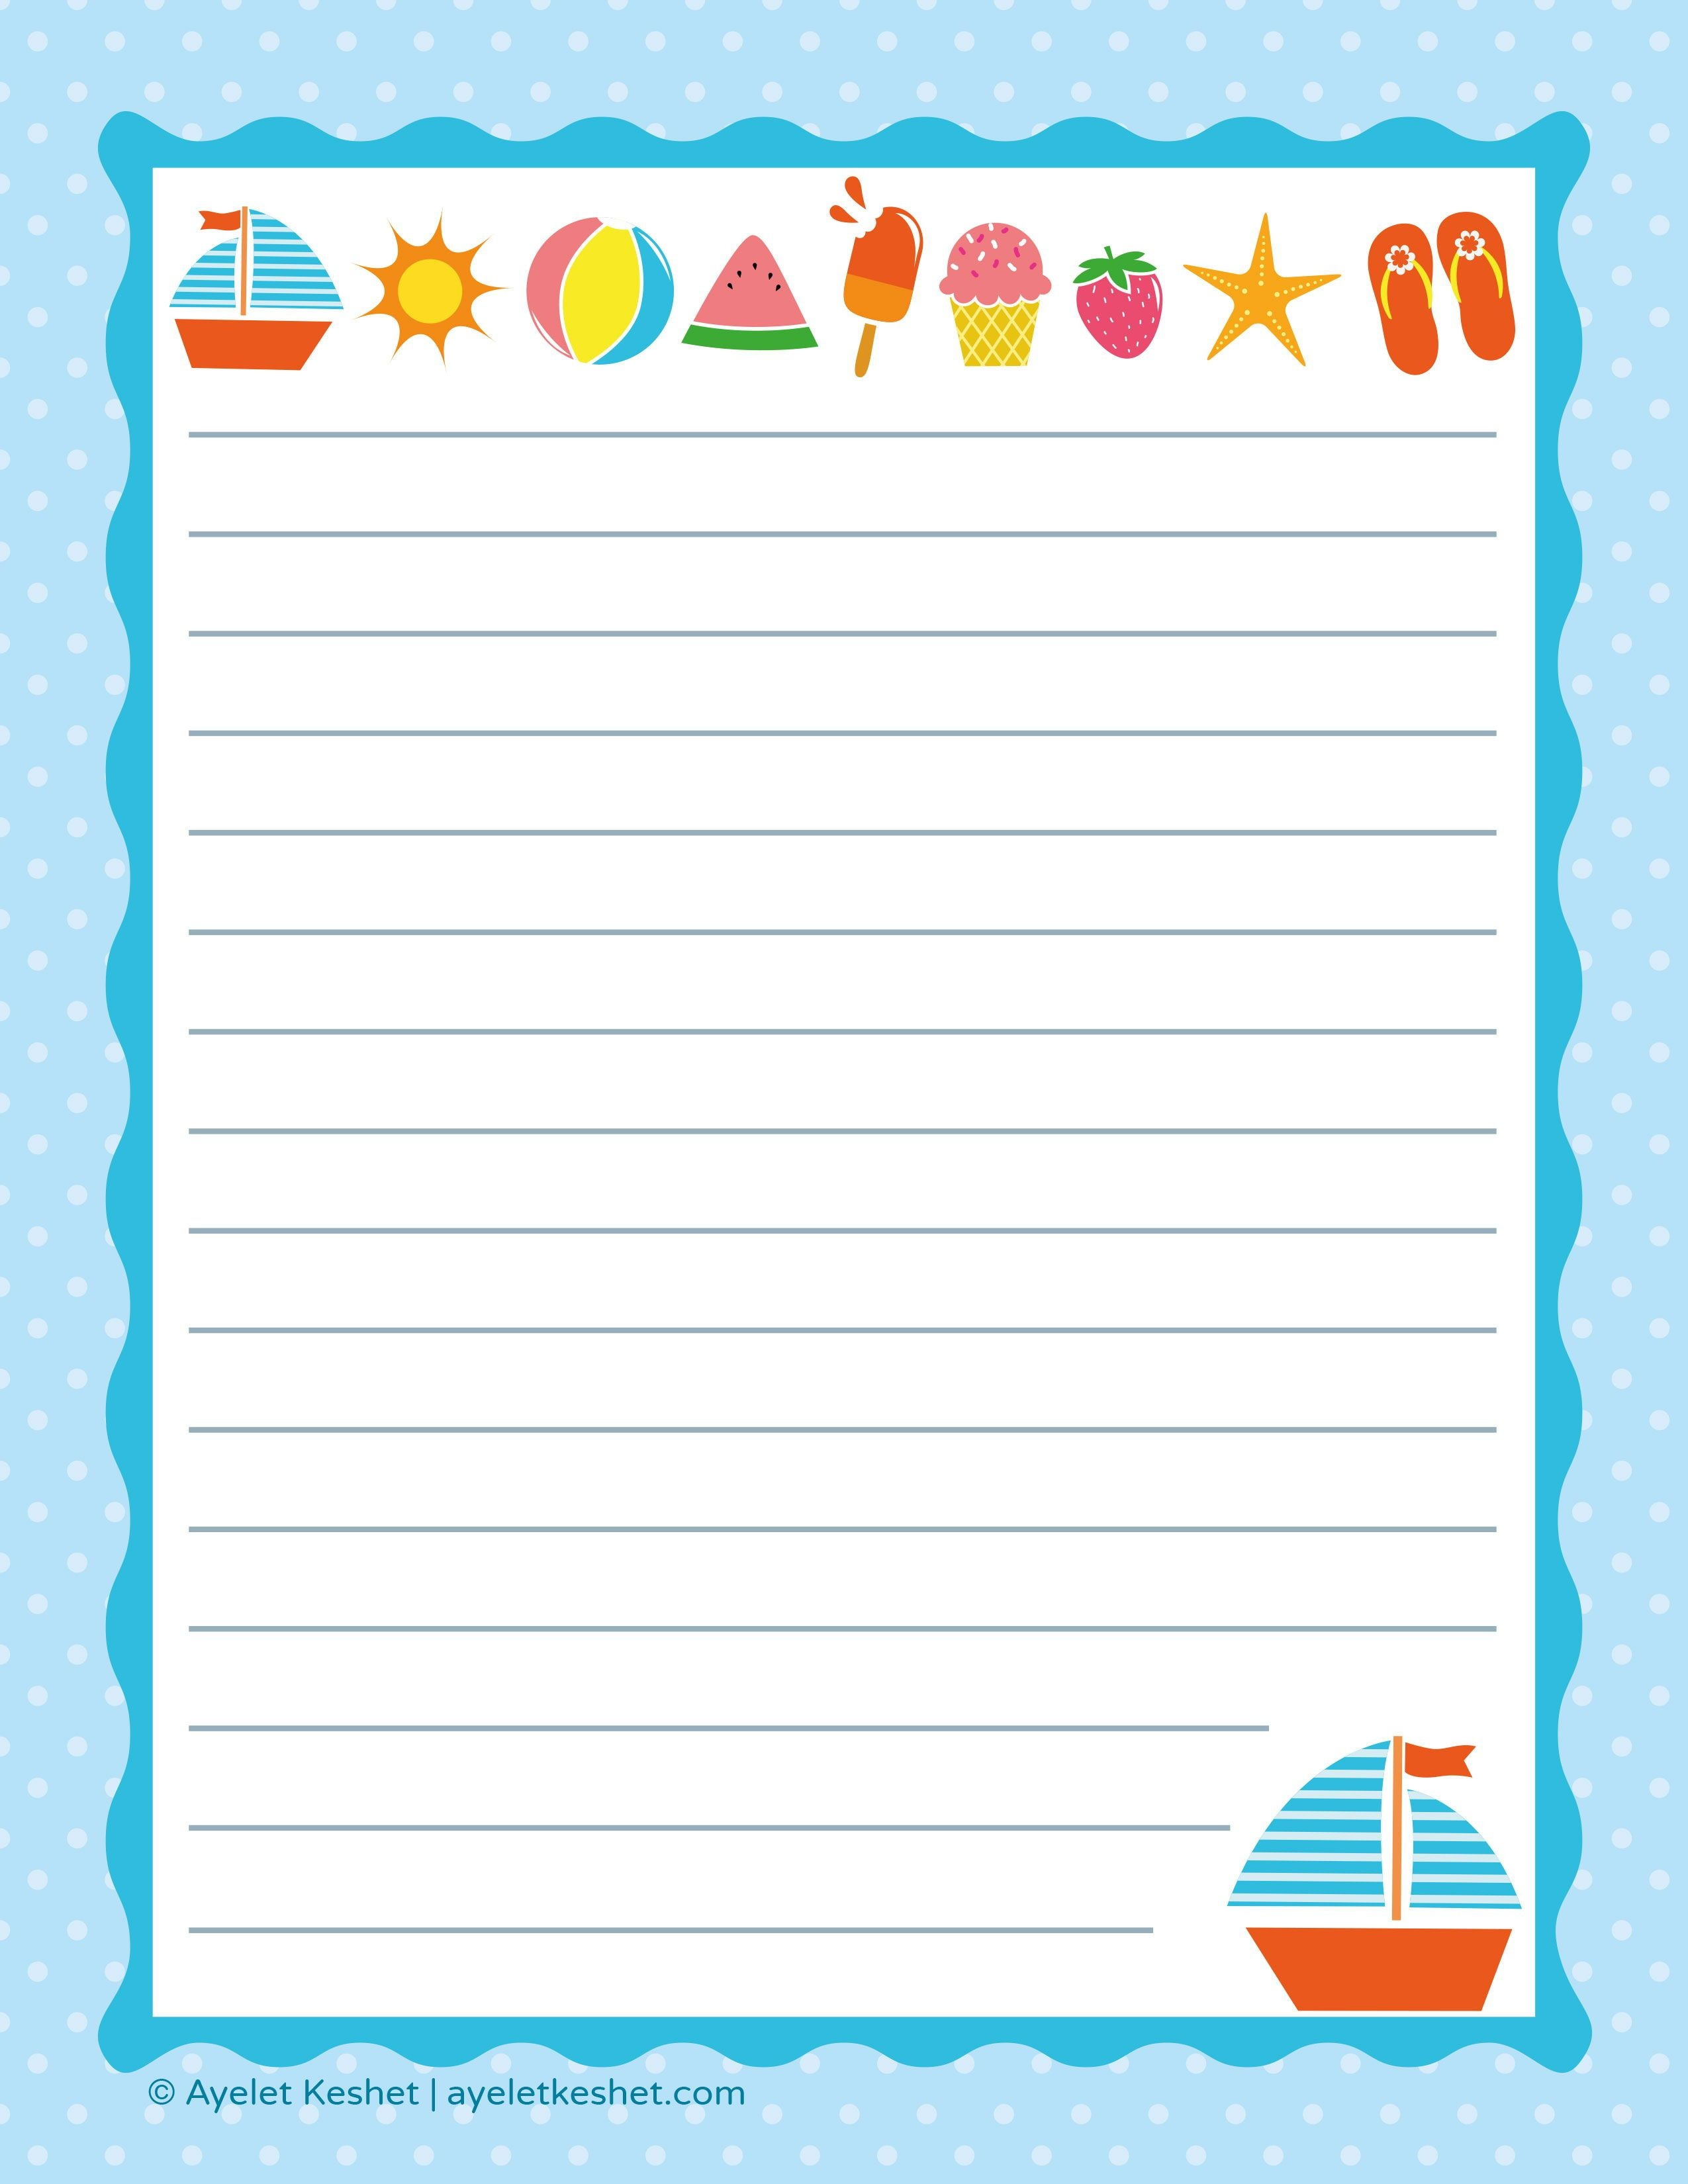 Free Printable Letter Paper   Printables To Go   Printable Letters - Free Printable Stationary Pdf